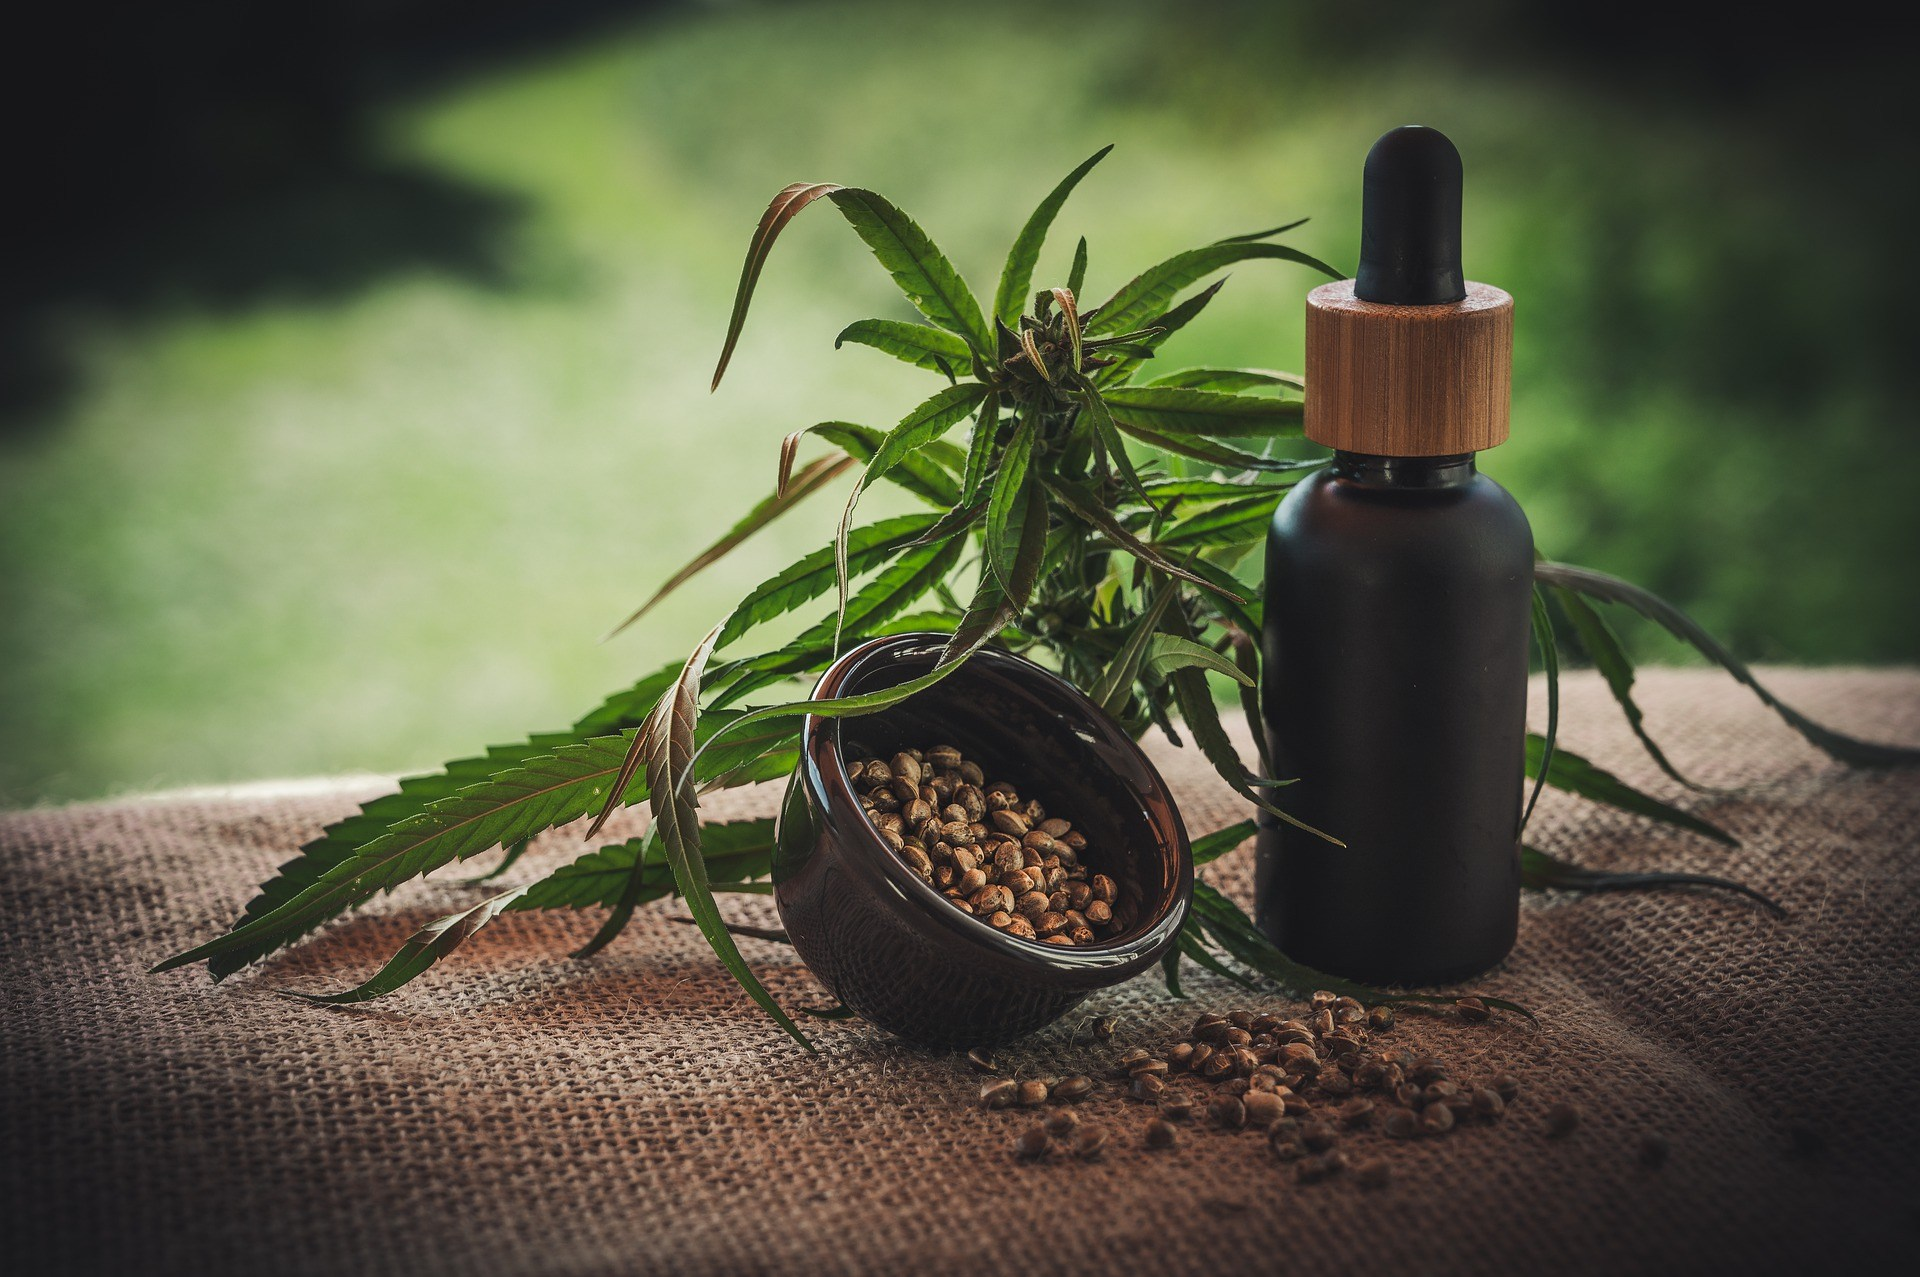 Orchid Ventures Announces The Publishing Of A CBD Absorption Study Using CELLg8® In The American Journal Of Endocannabinoid Medicine